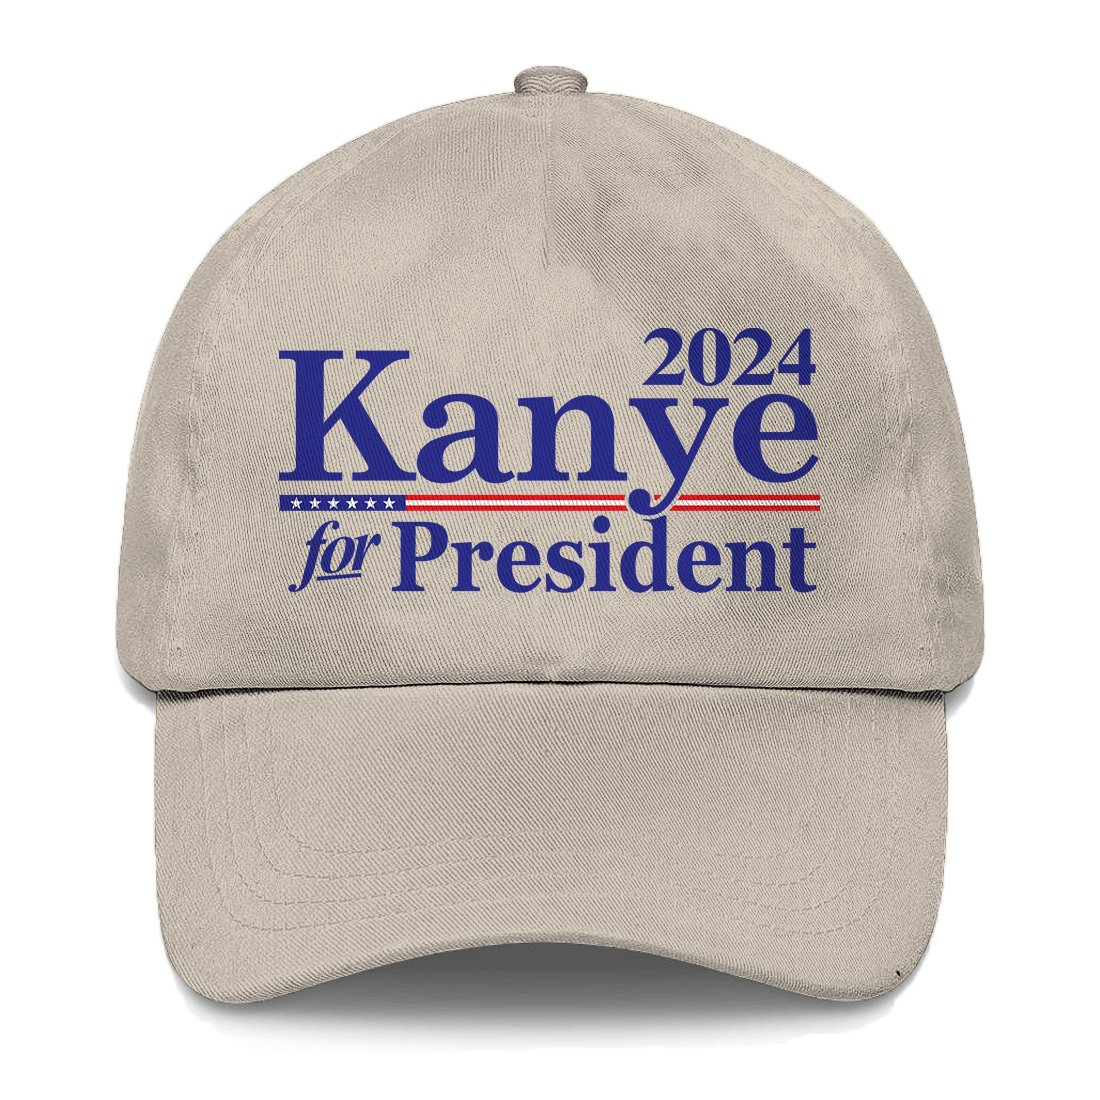 Tcombo Kanye for President 2024 Dad Hat (Stone)